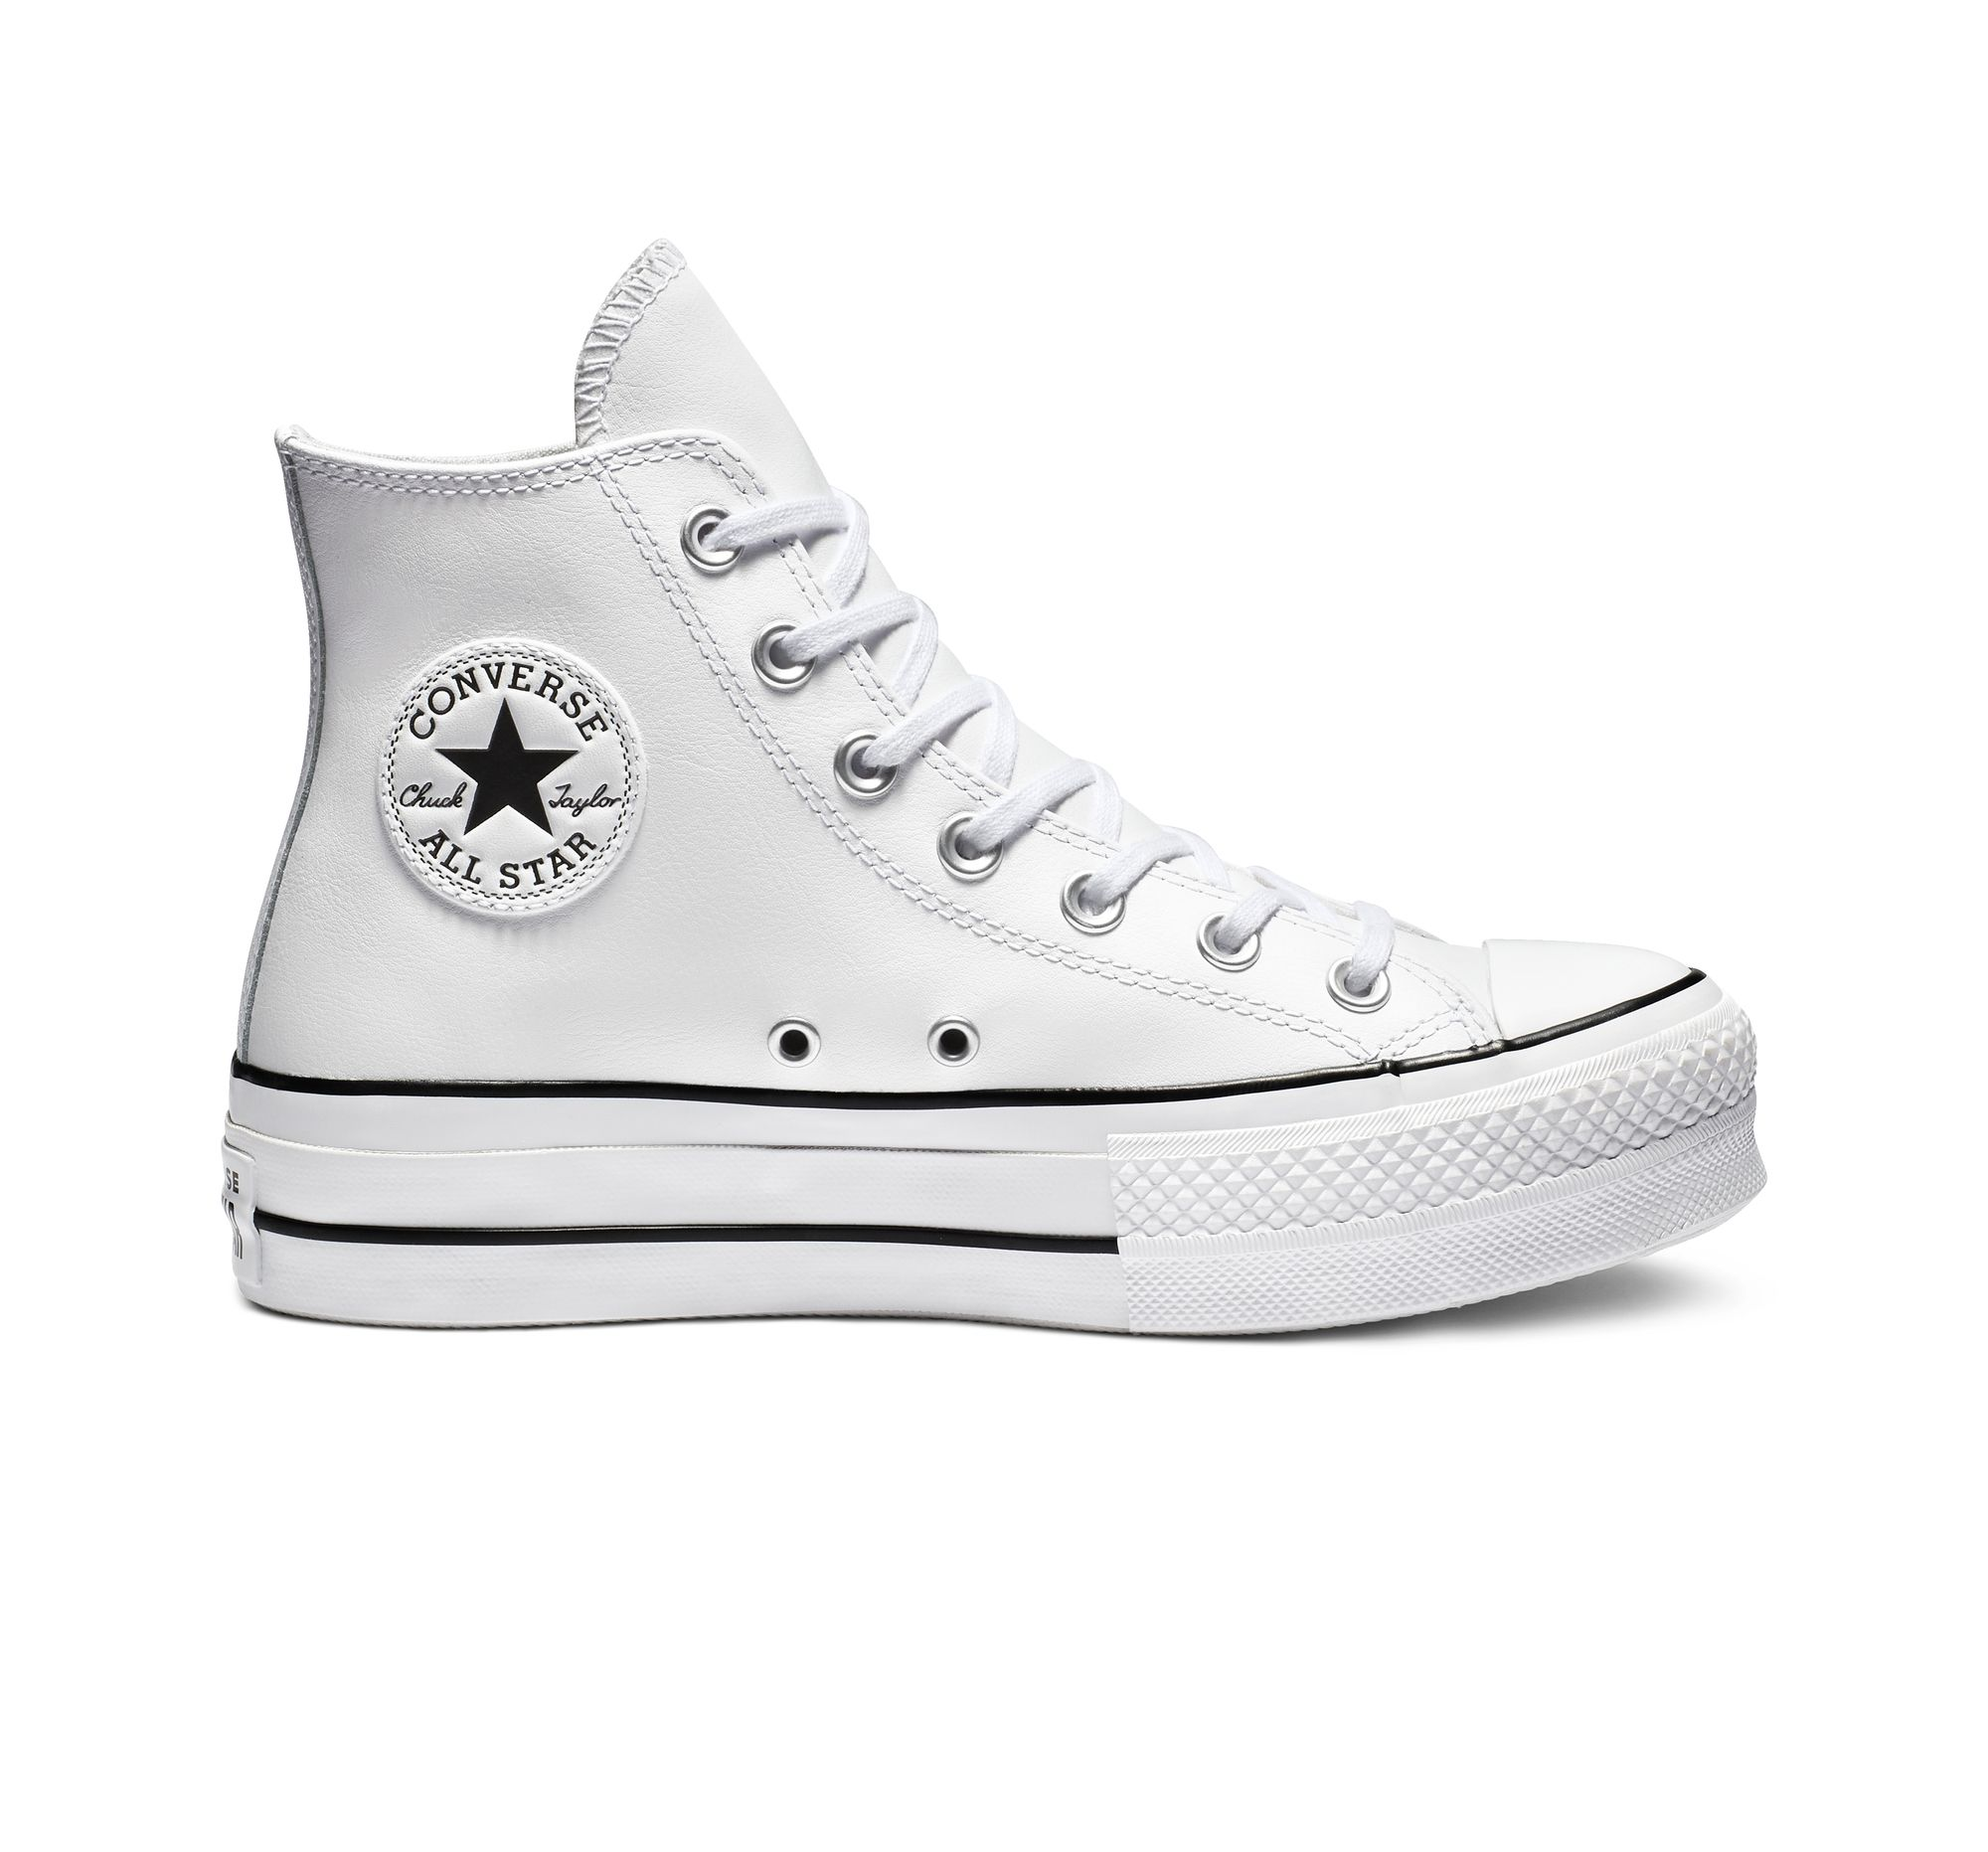 CONVERSE ALL STAR CHUCK TAYLOR LIFT CLEAN LEATHER PLATEFORME CUIR